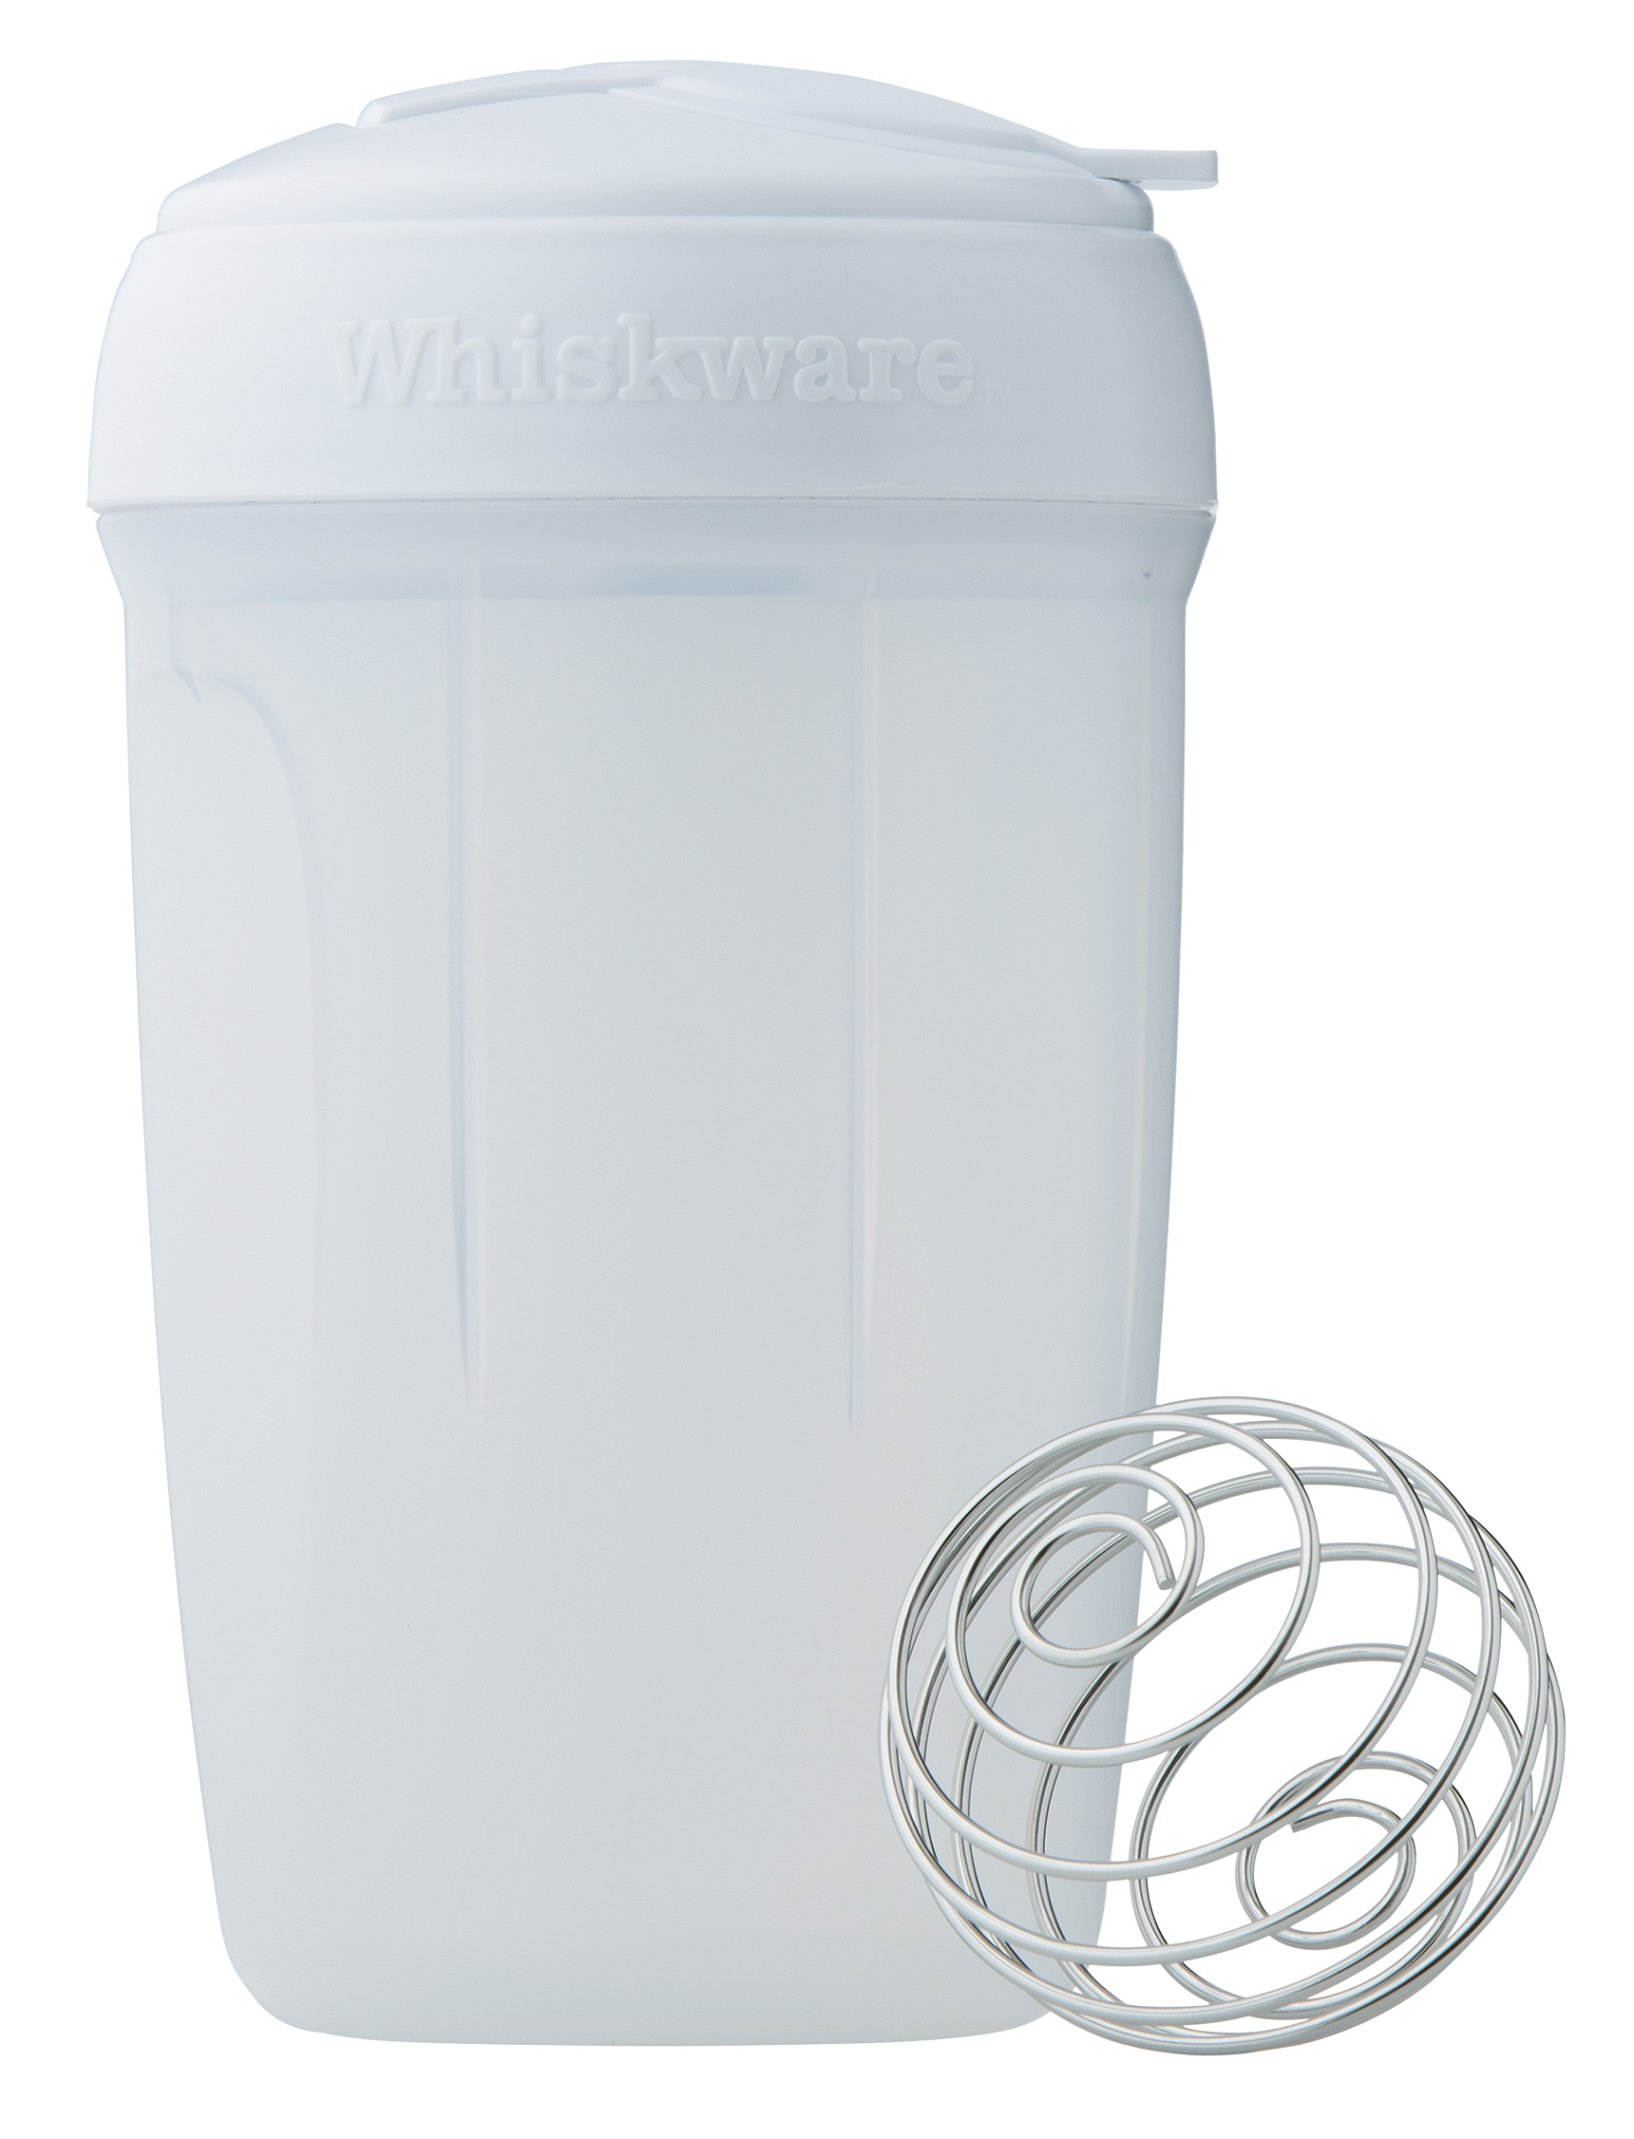 Whiskware Egg Mixer with BlenderBall Wire Whisk - 600023 < Beaters ...